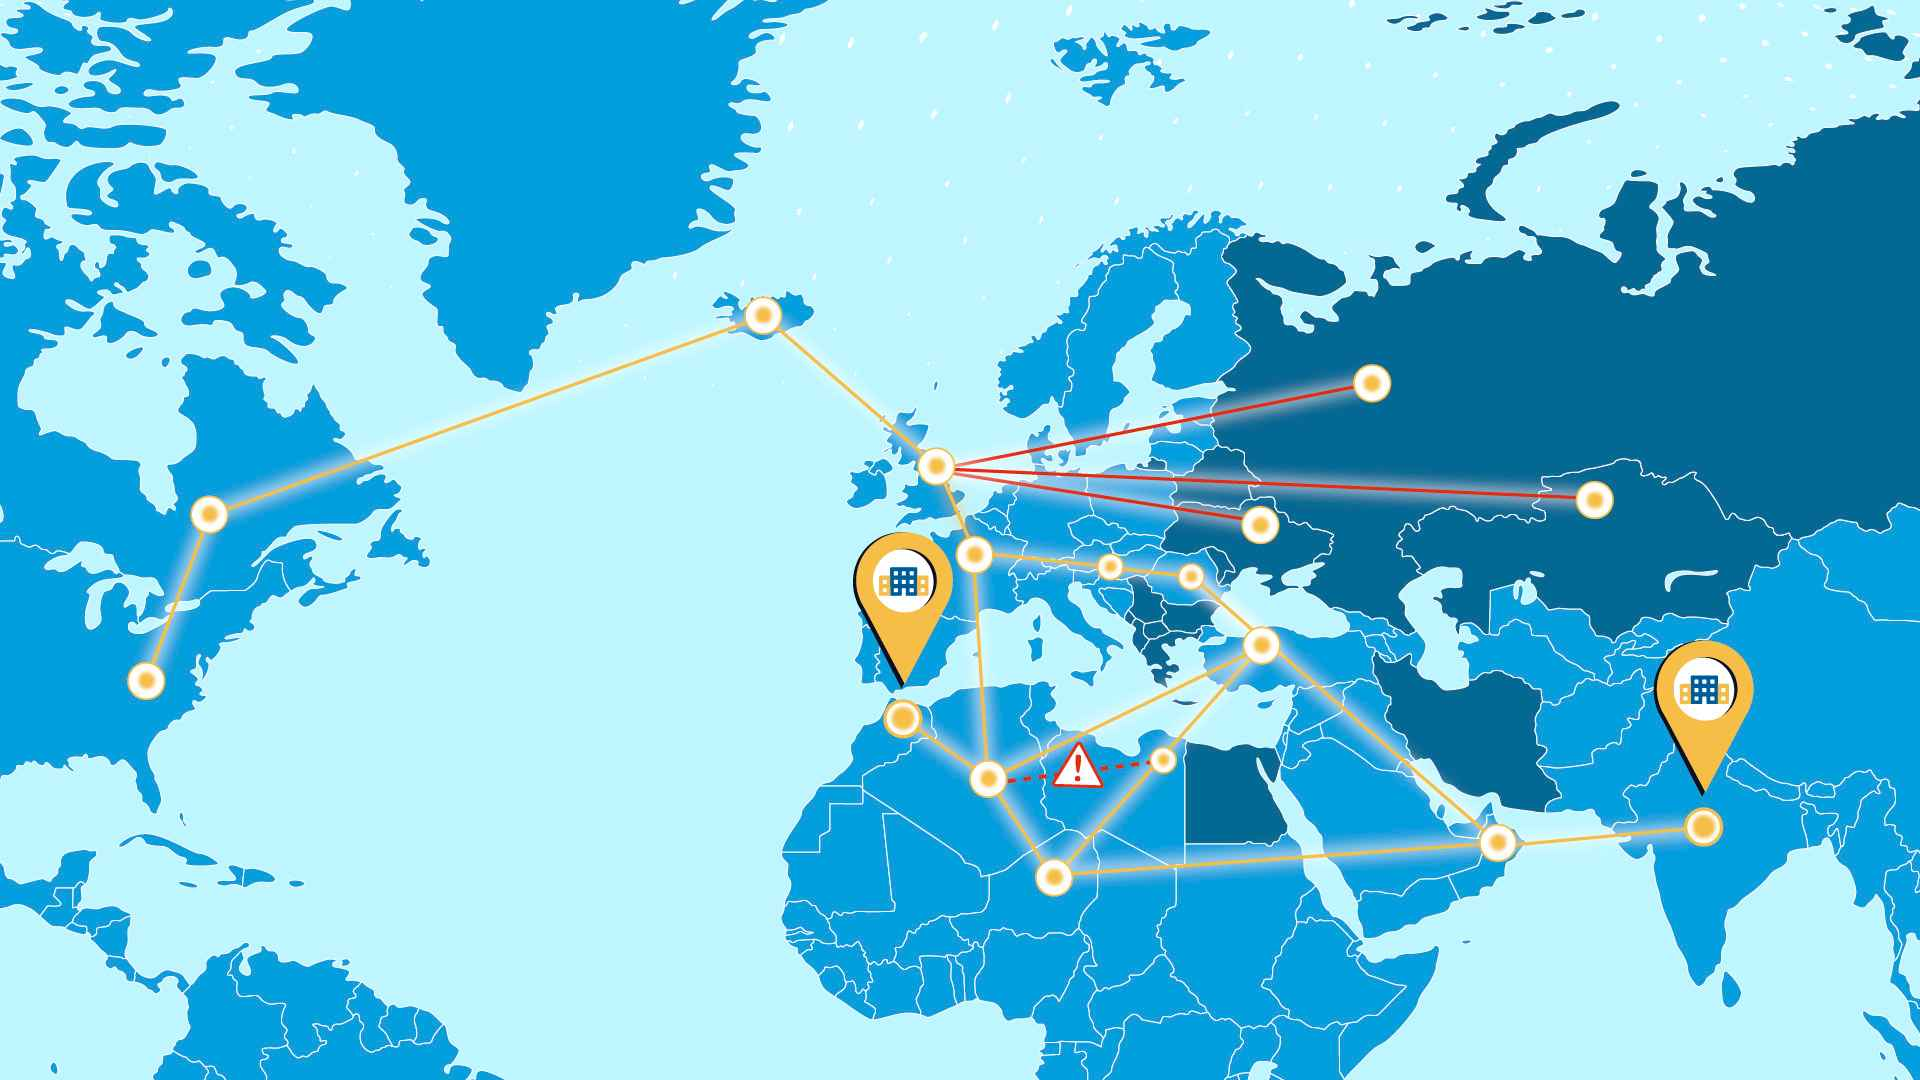 Map image in Animated Explainer Video